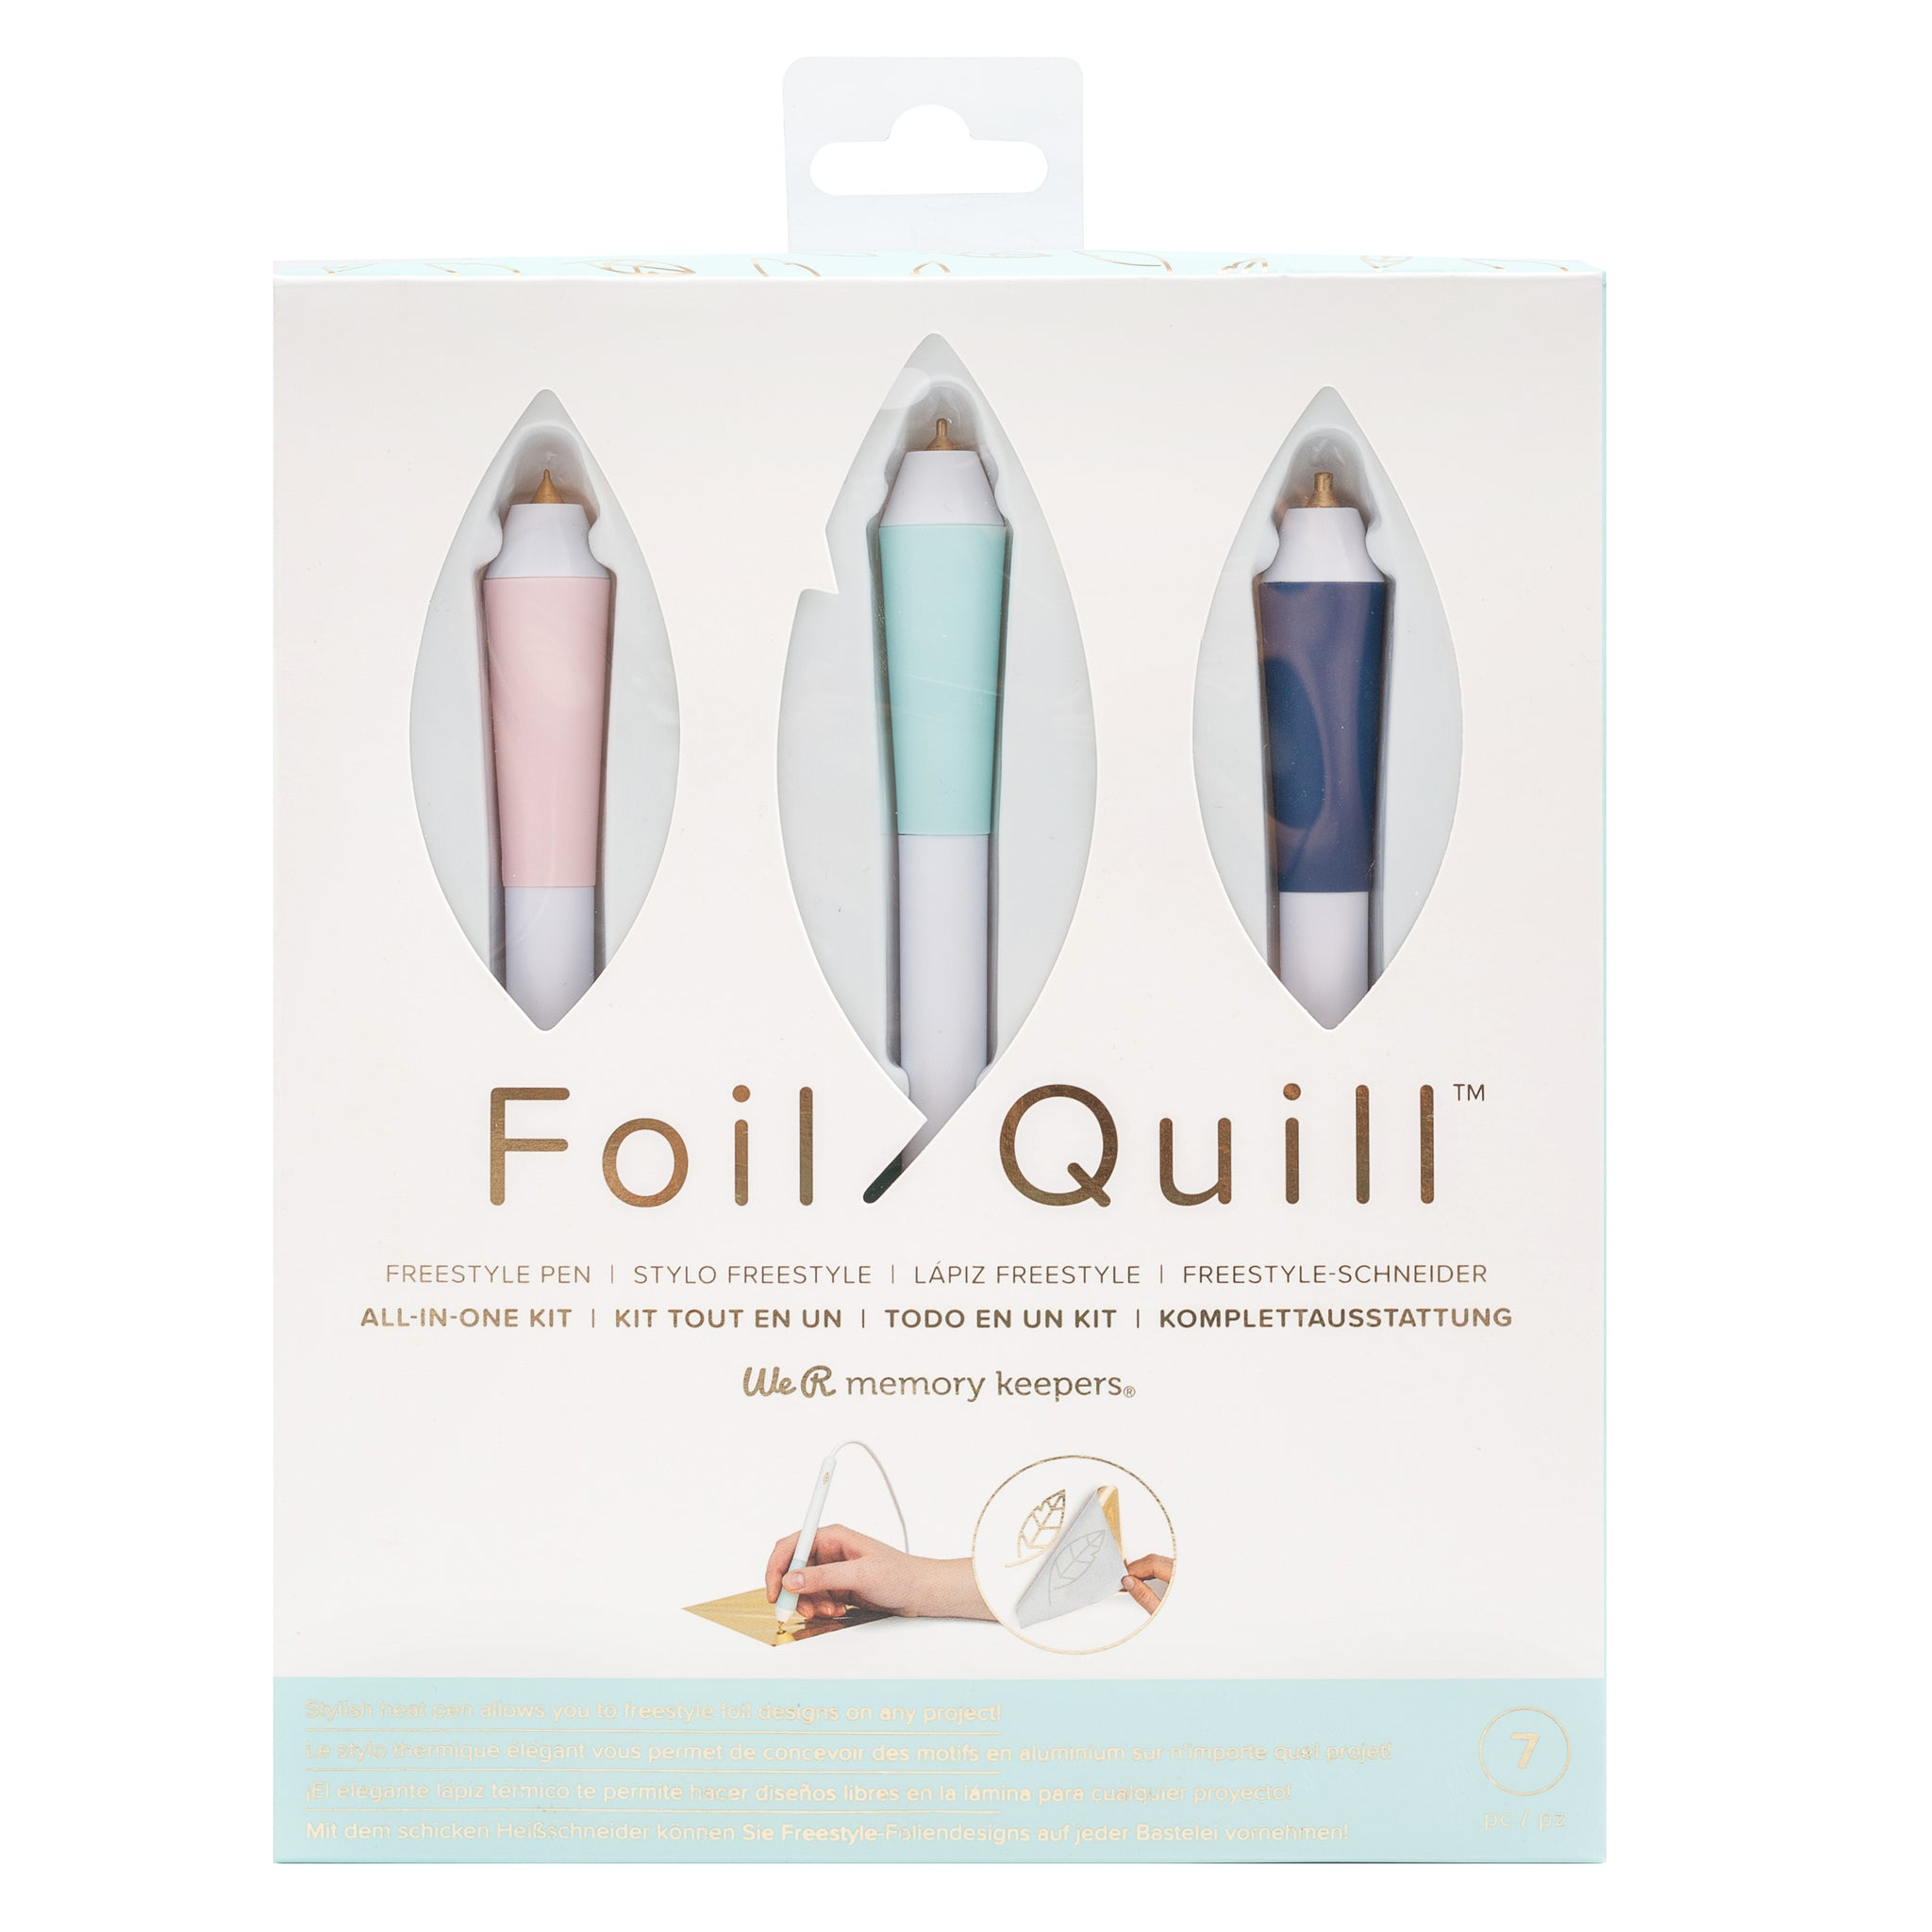 594605 We R Memory Keepers Foil Quill Freestyle Starter Kit + ENVIO GRATIS